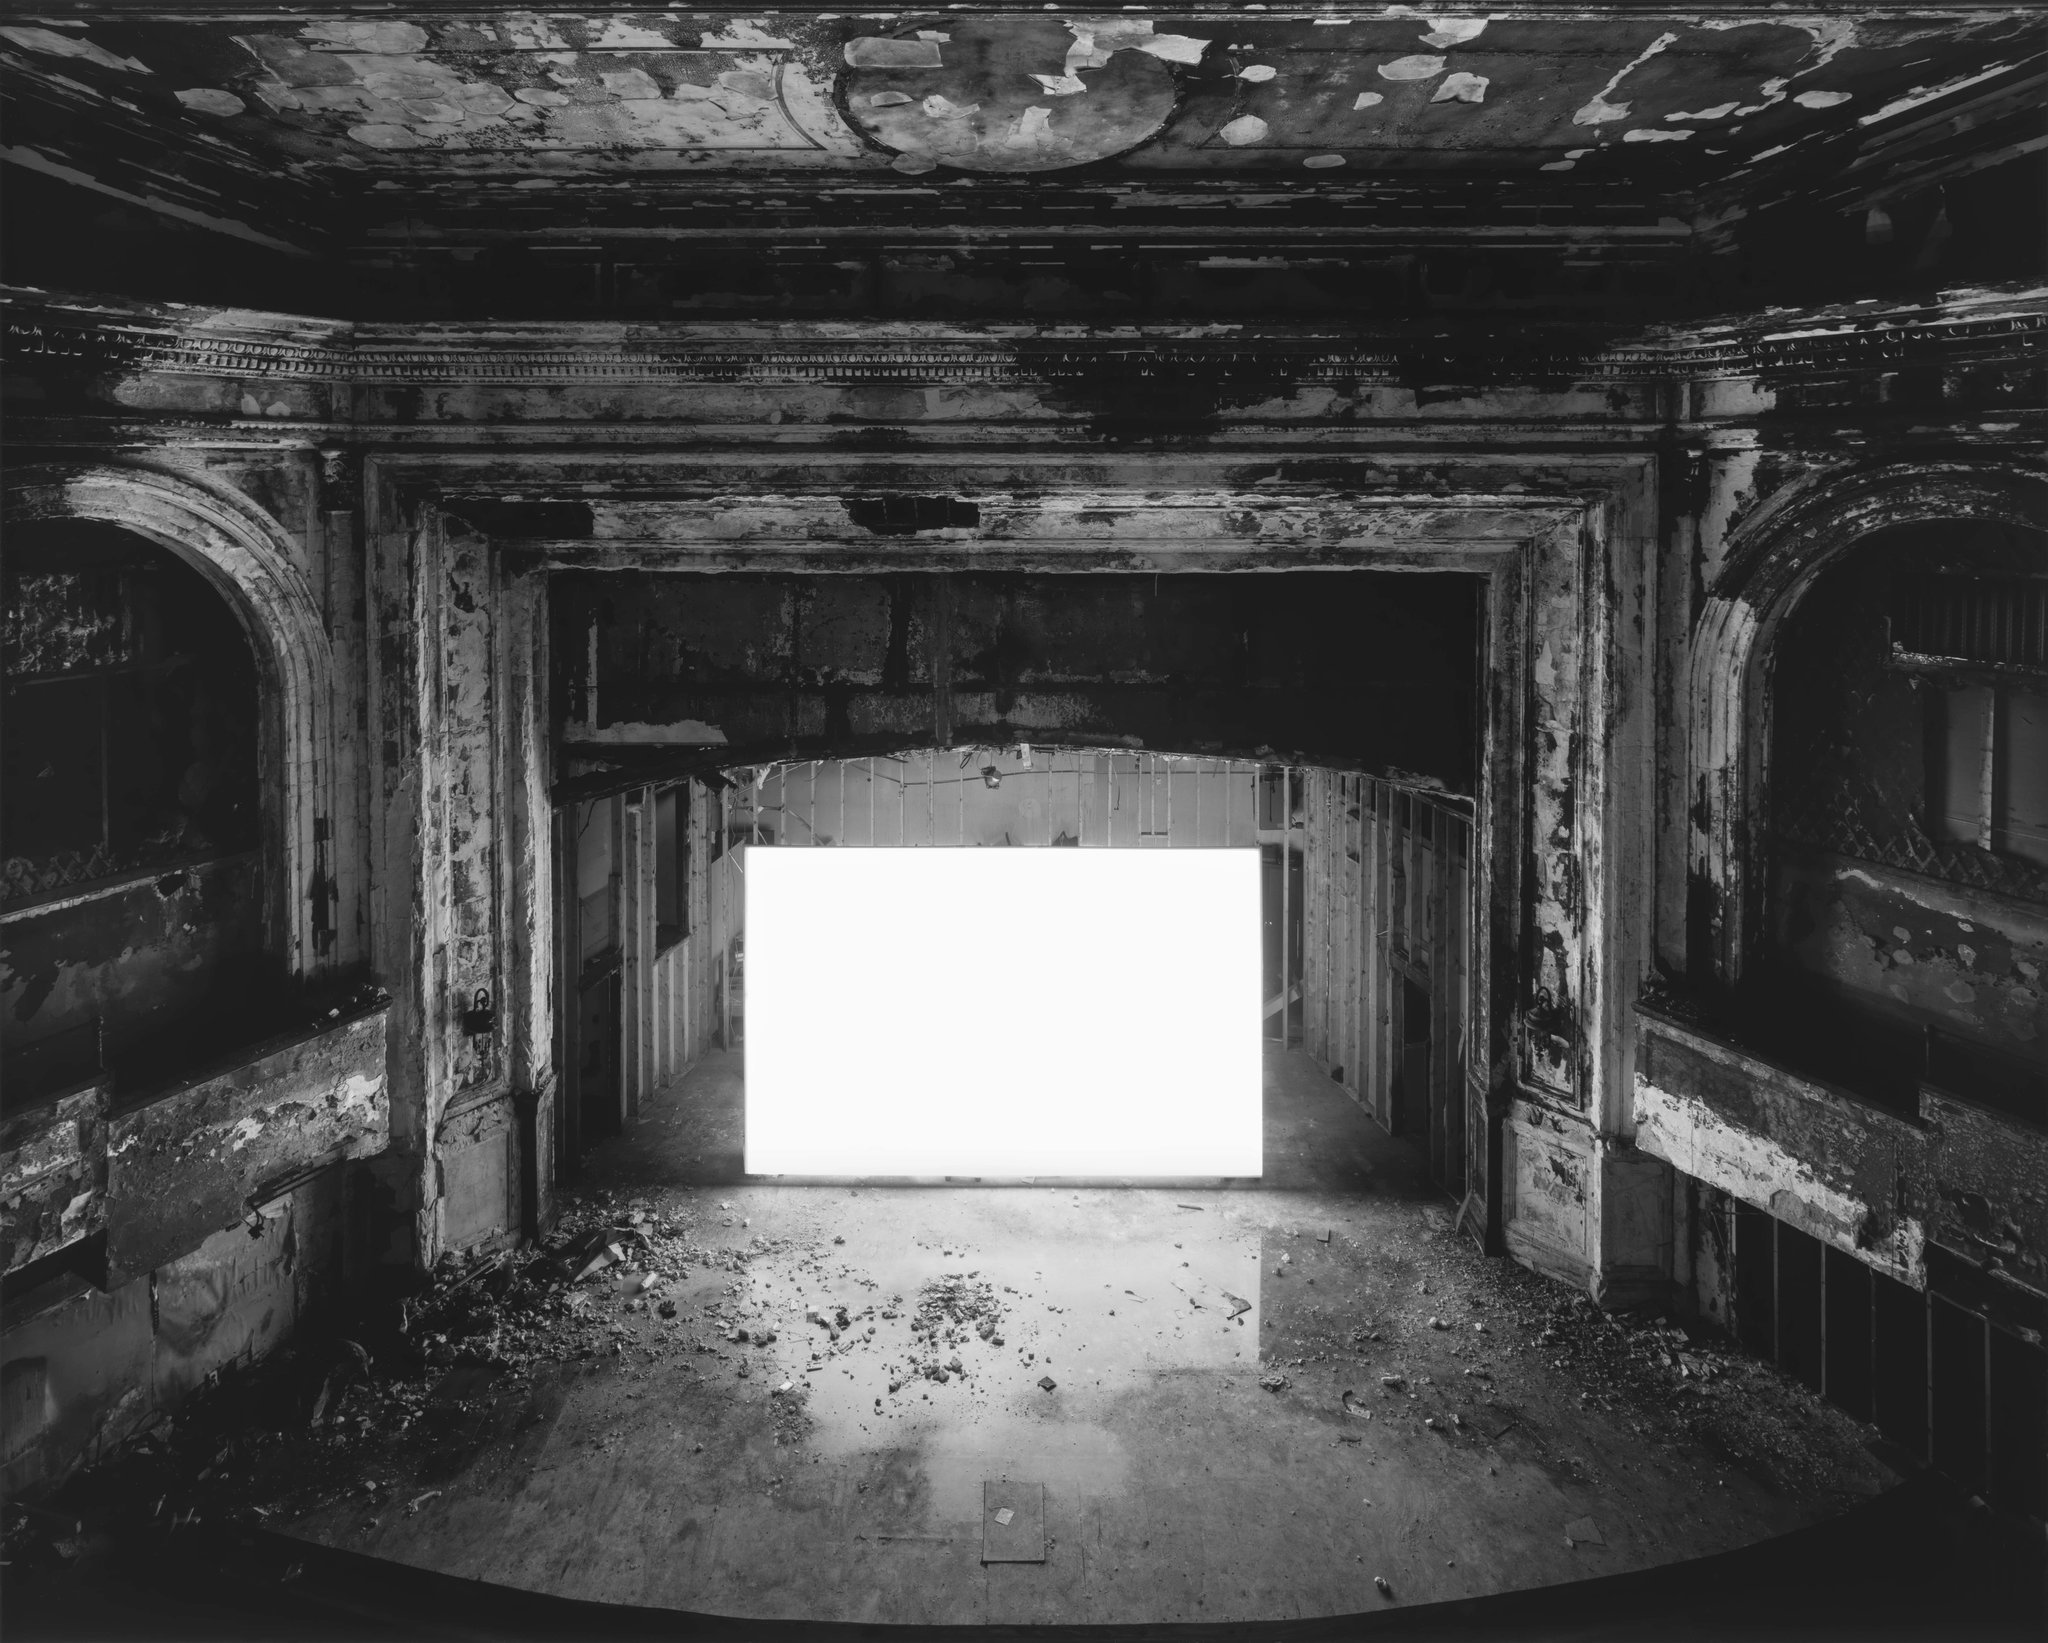 What is Hiroshi Sugimoto's Theaters photography project all